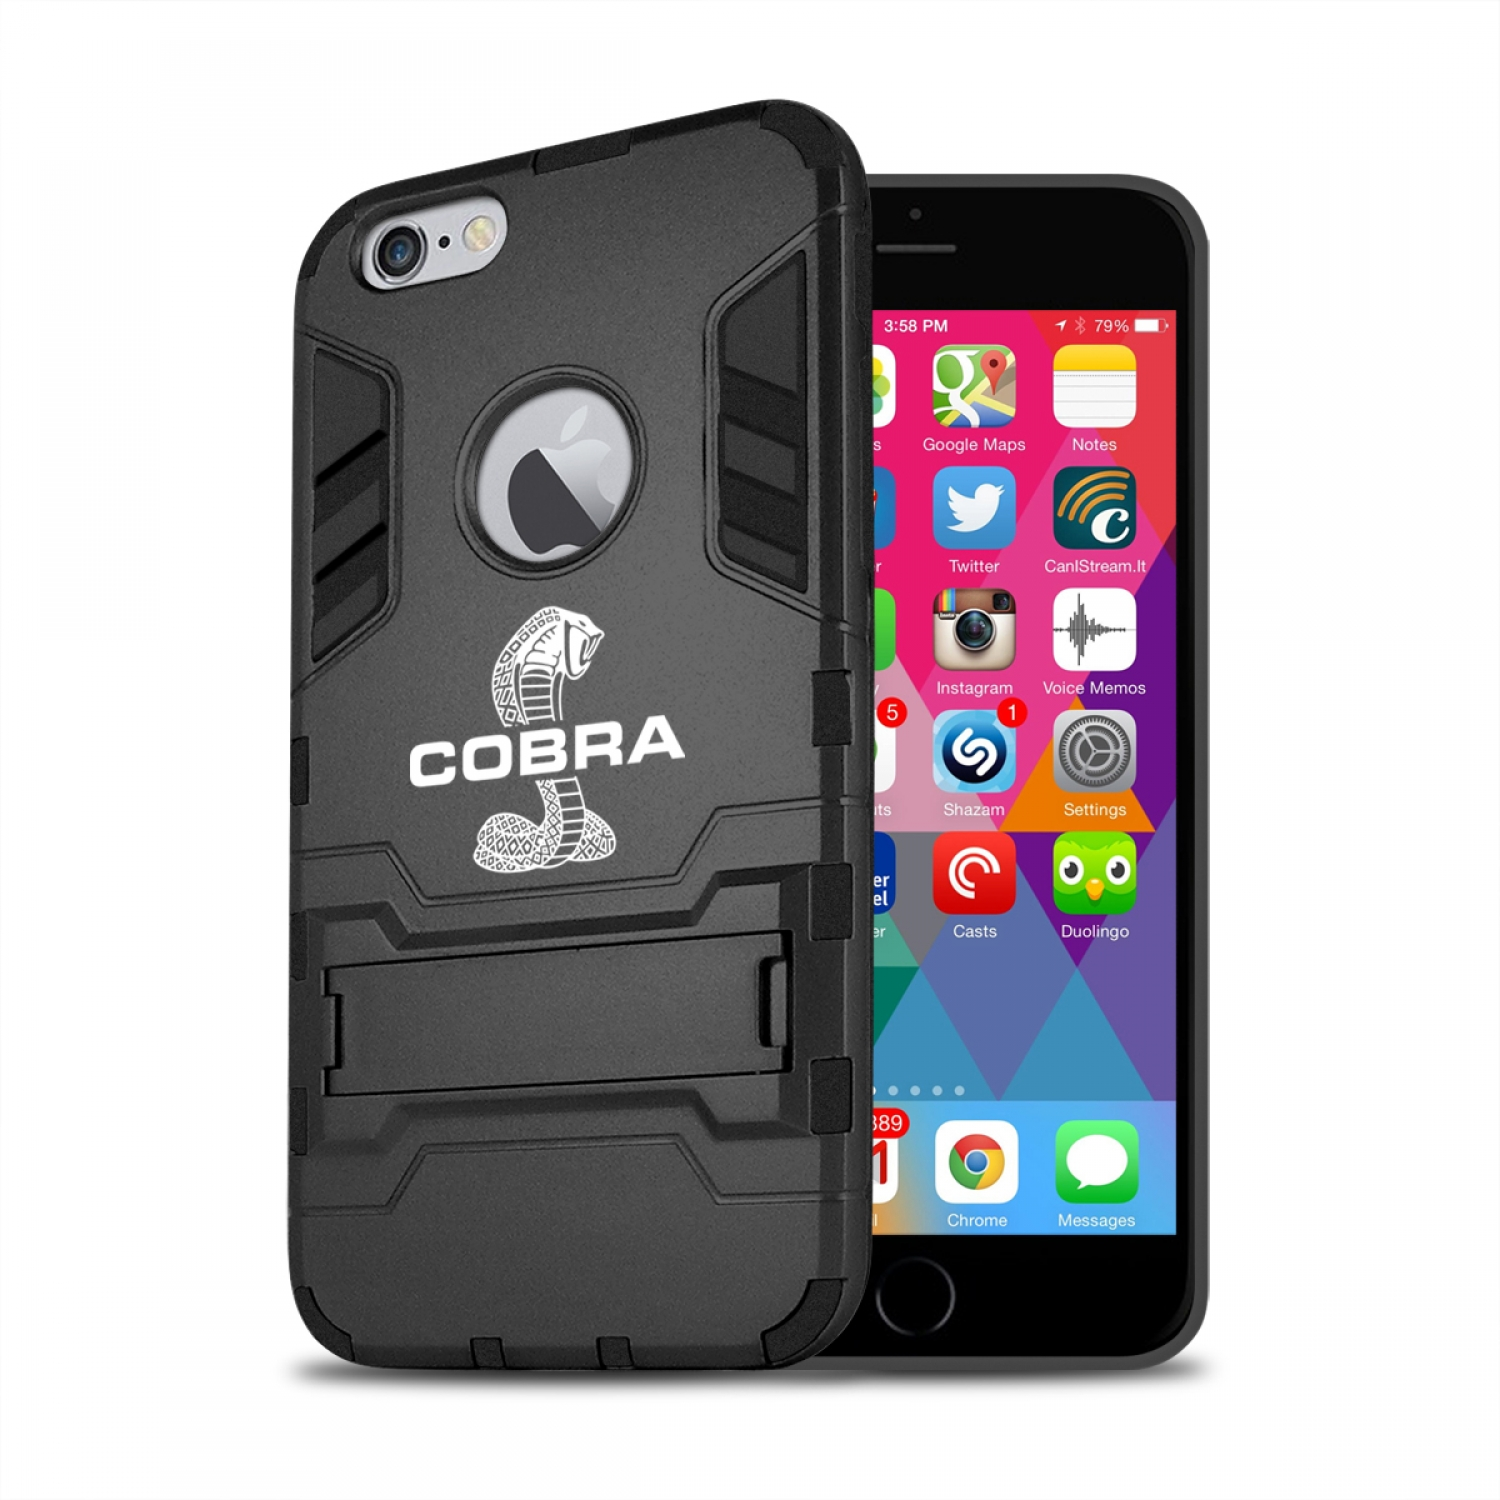 Ford Mustang Cobra iPhone 6 6s Shockproof TPU ABS Hybrid Black Phone Case